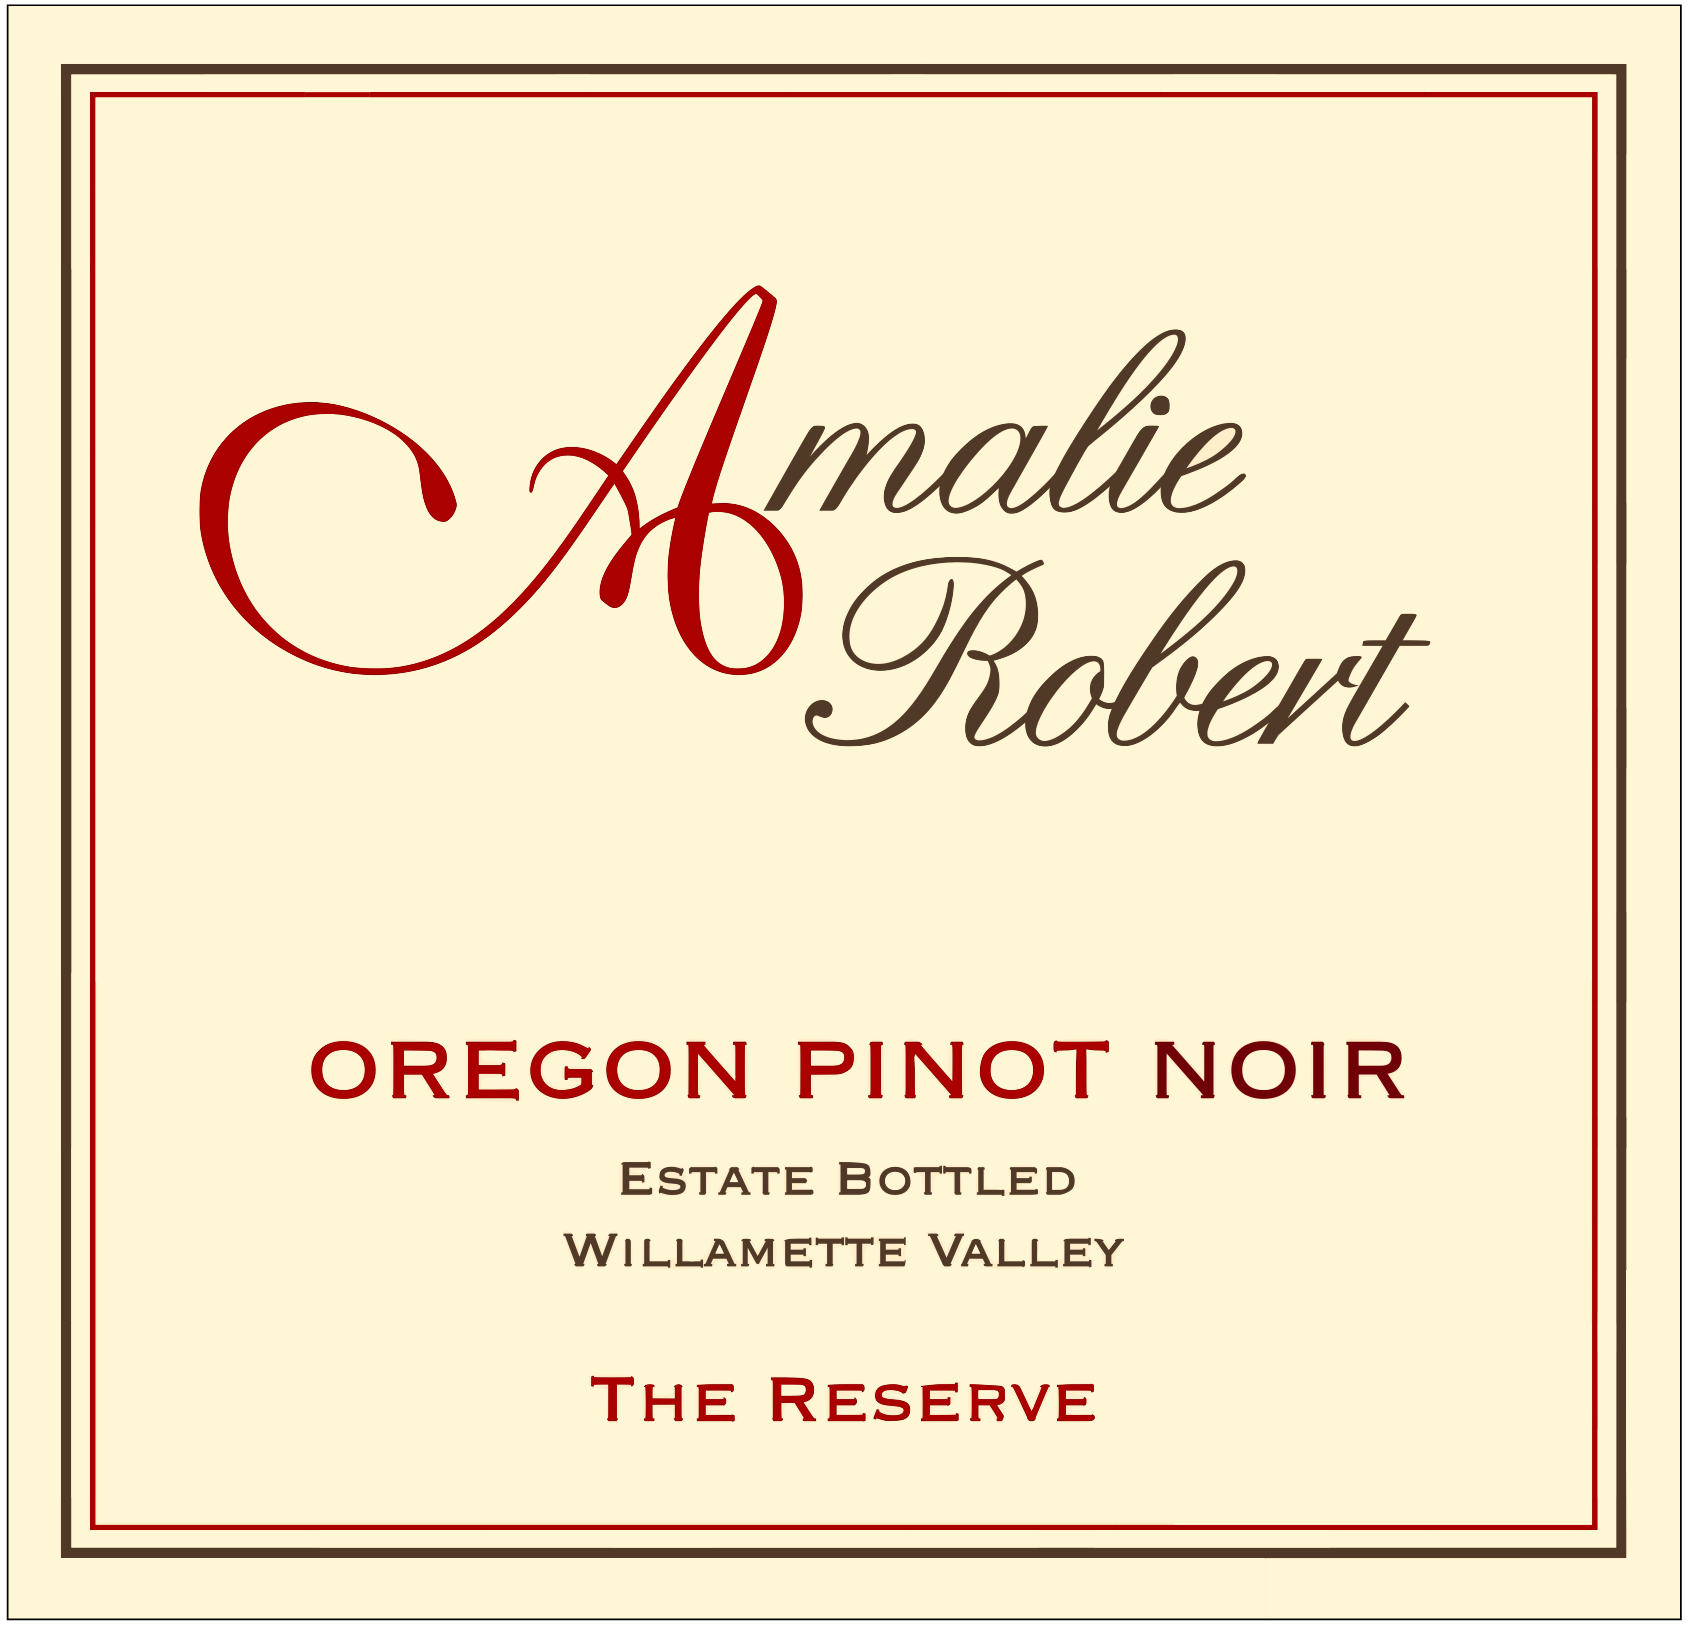 2010 The Reserve Pinot Noir